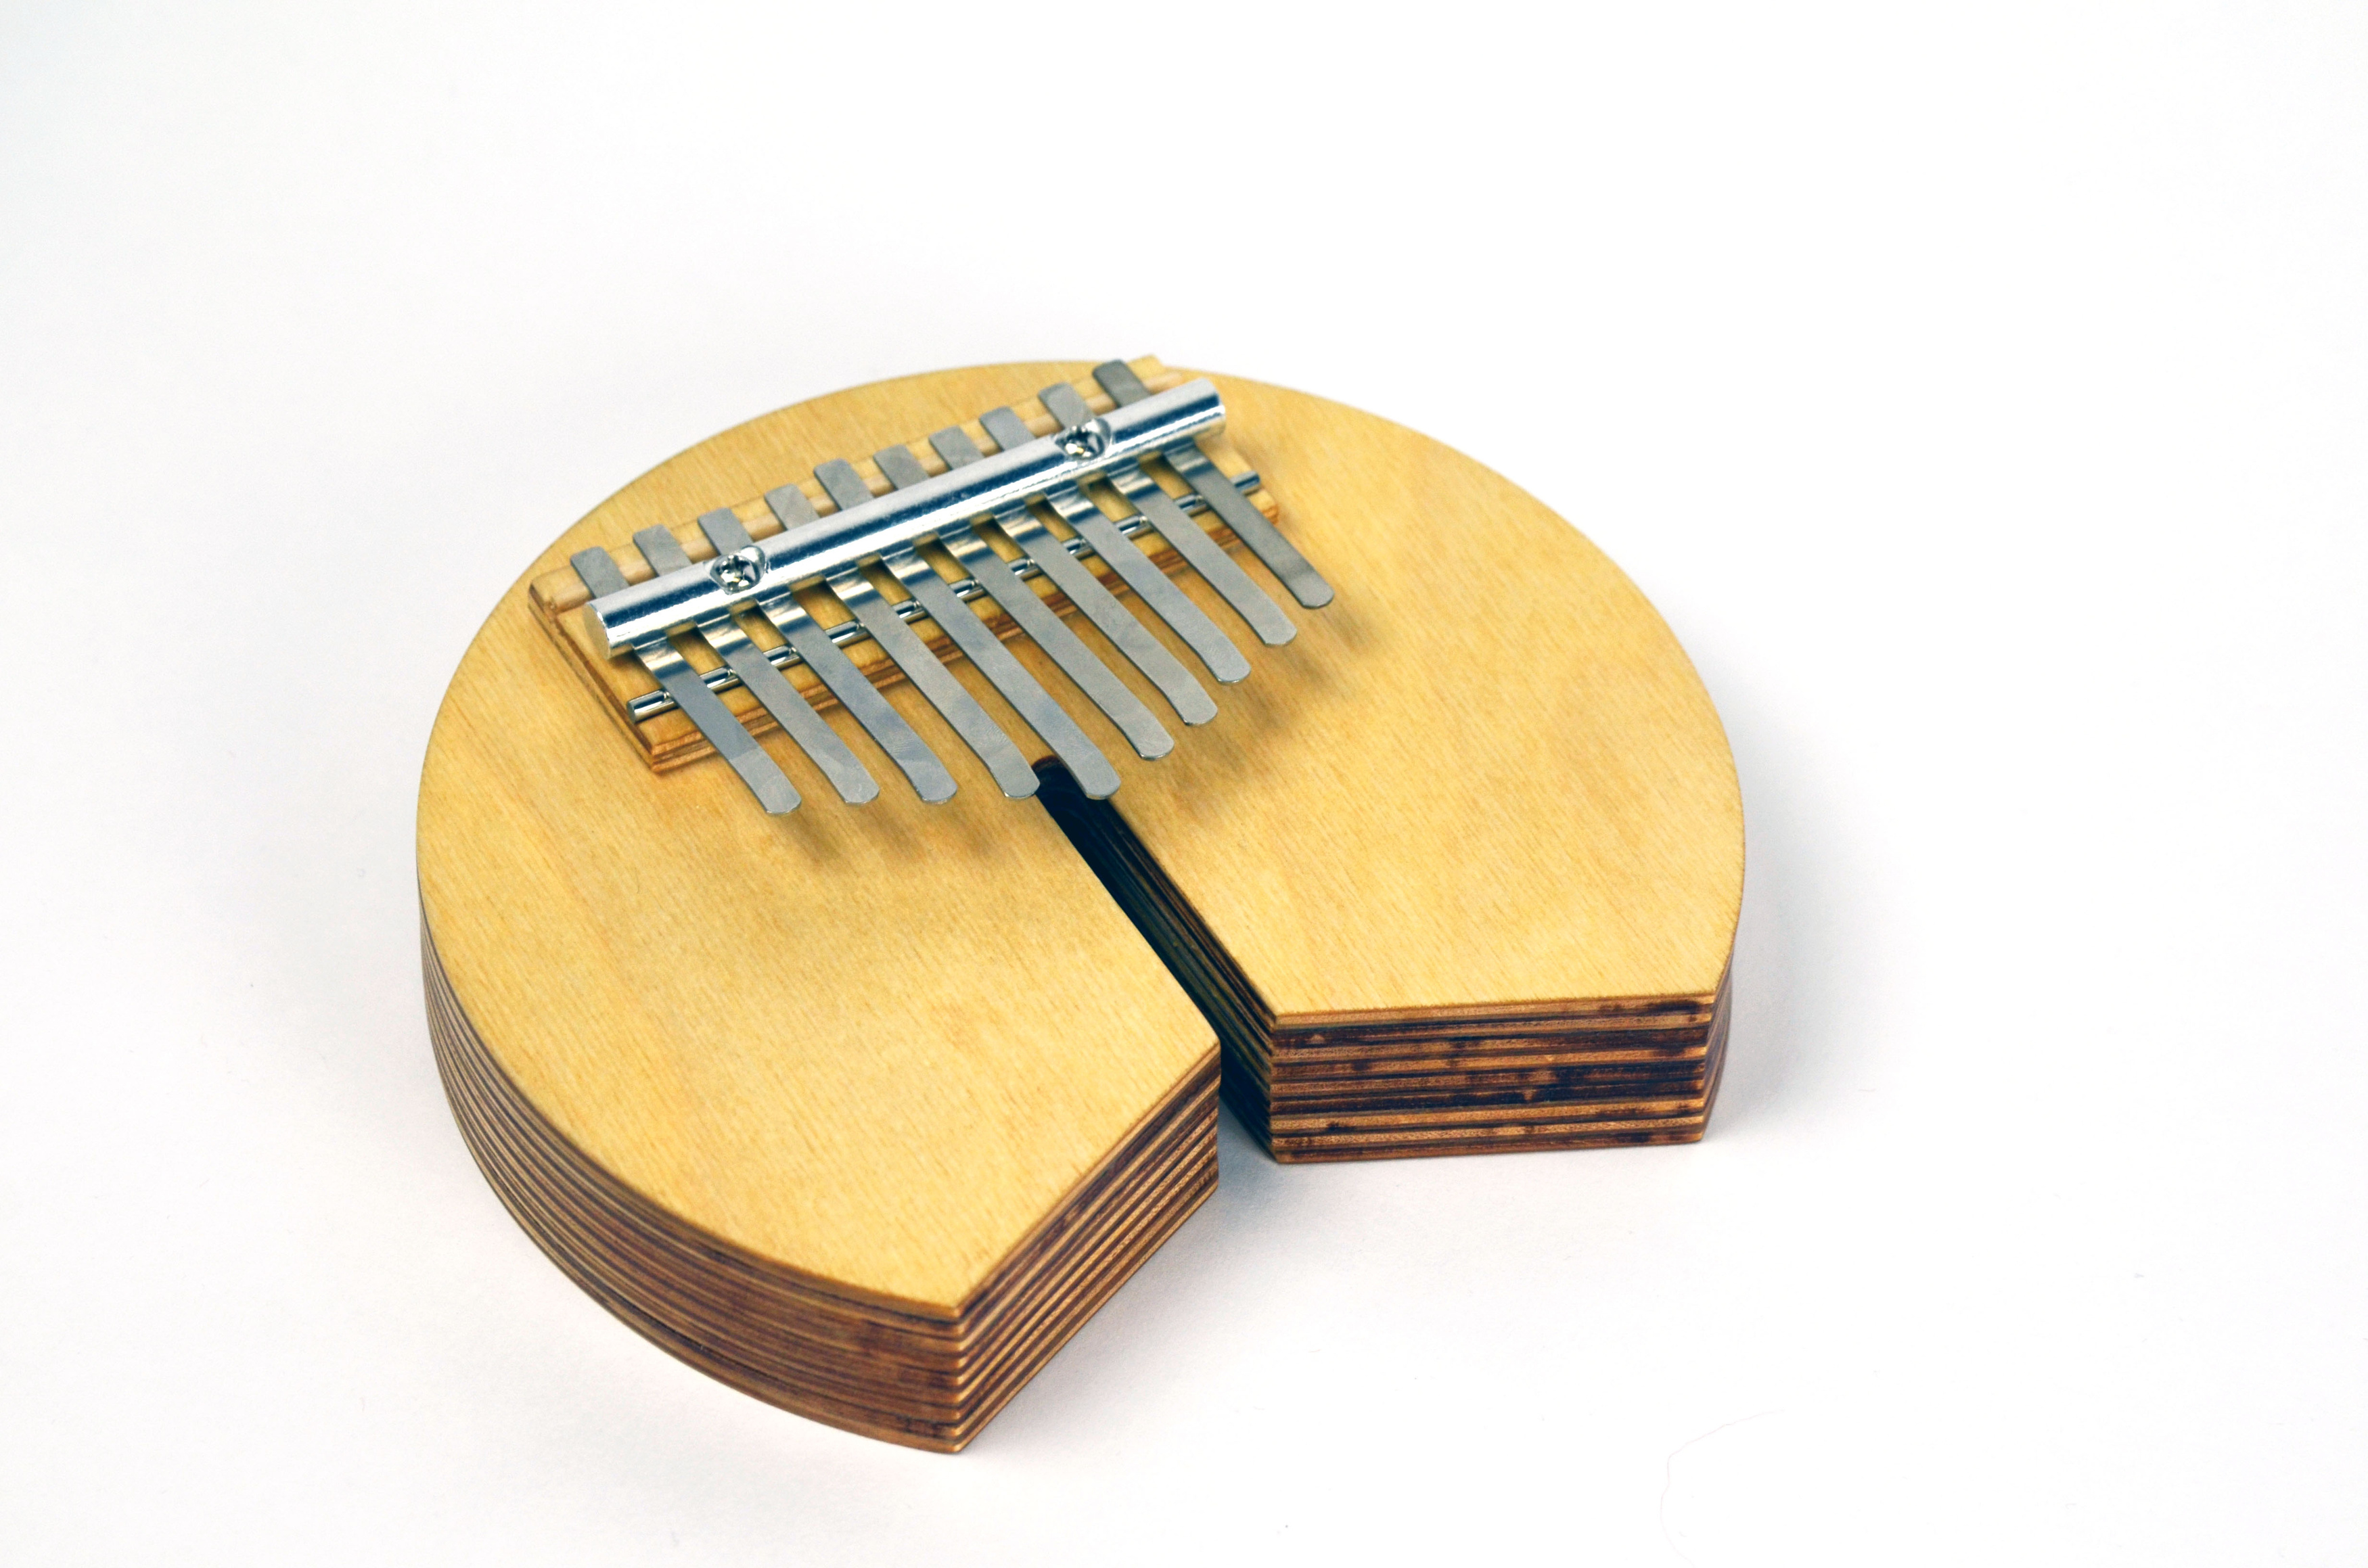 5c1bc0092f5 A Kalimba (the finger piano) in the shape of the letter C out of birch  plywood